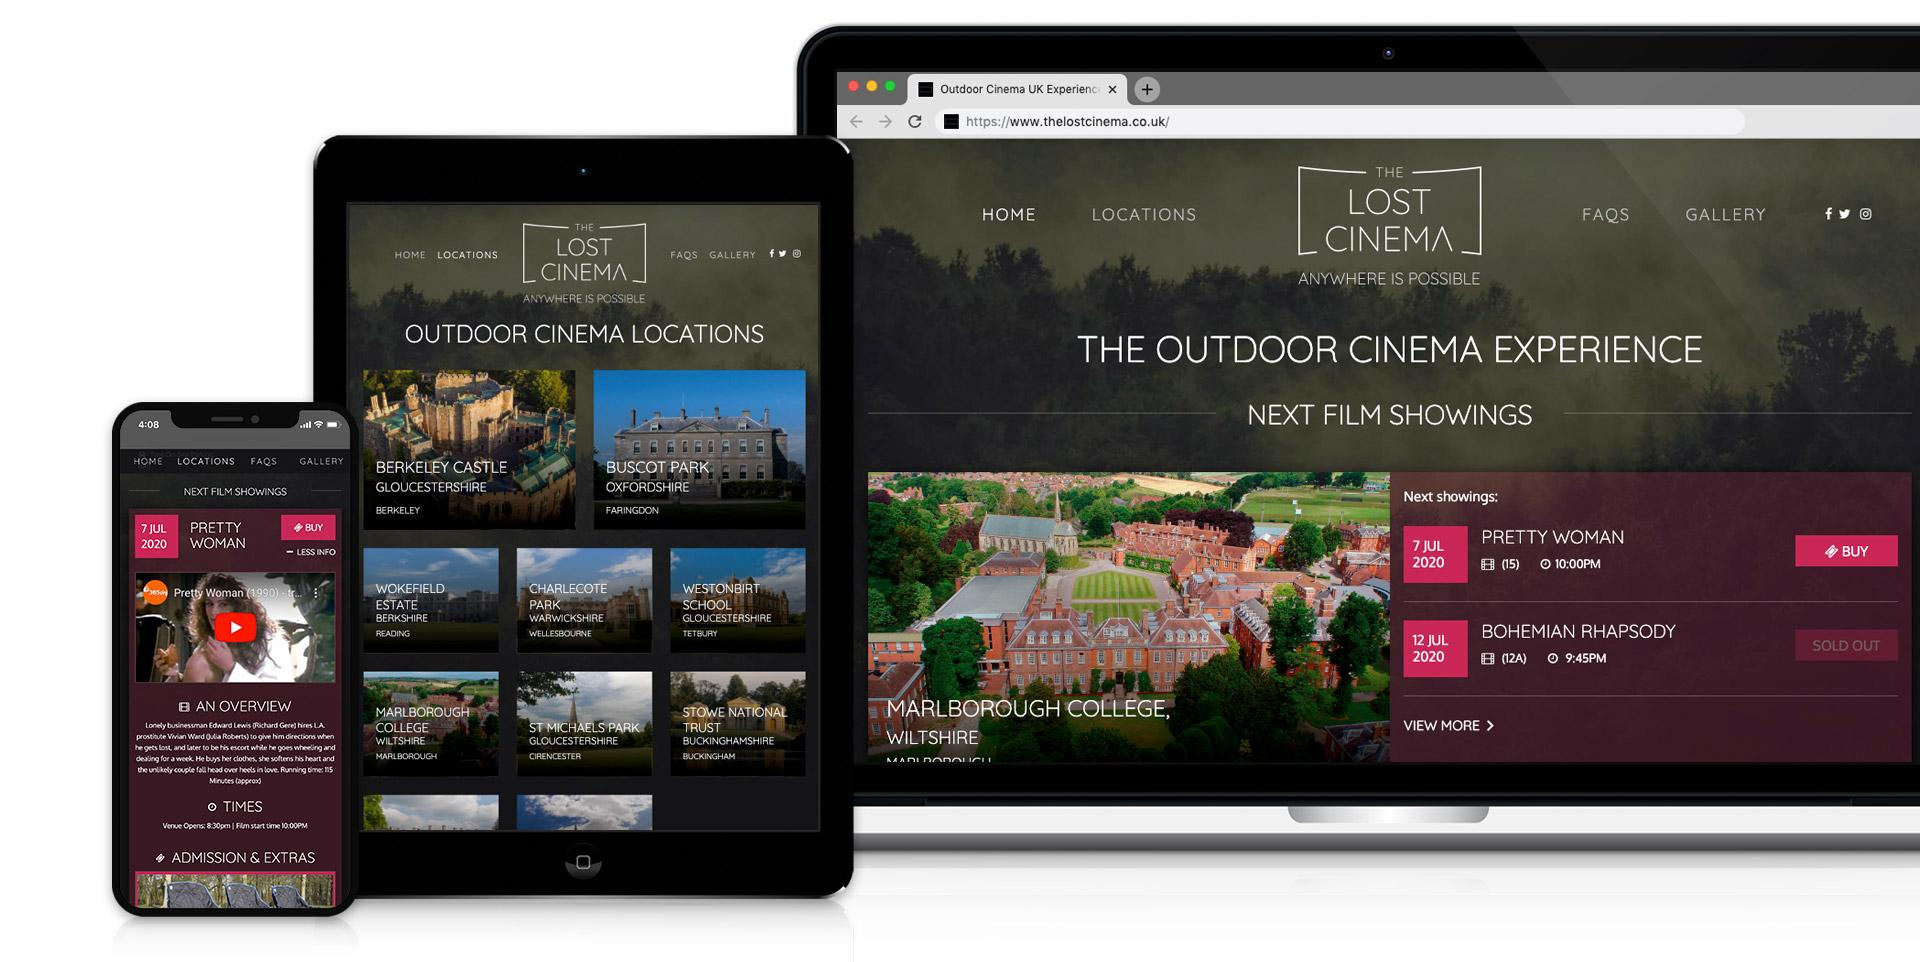 The Lost Cinema responsive website design